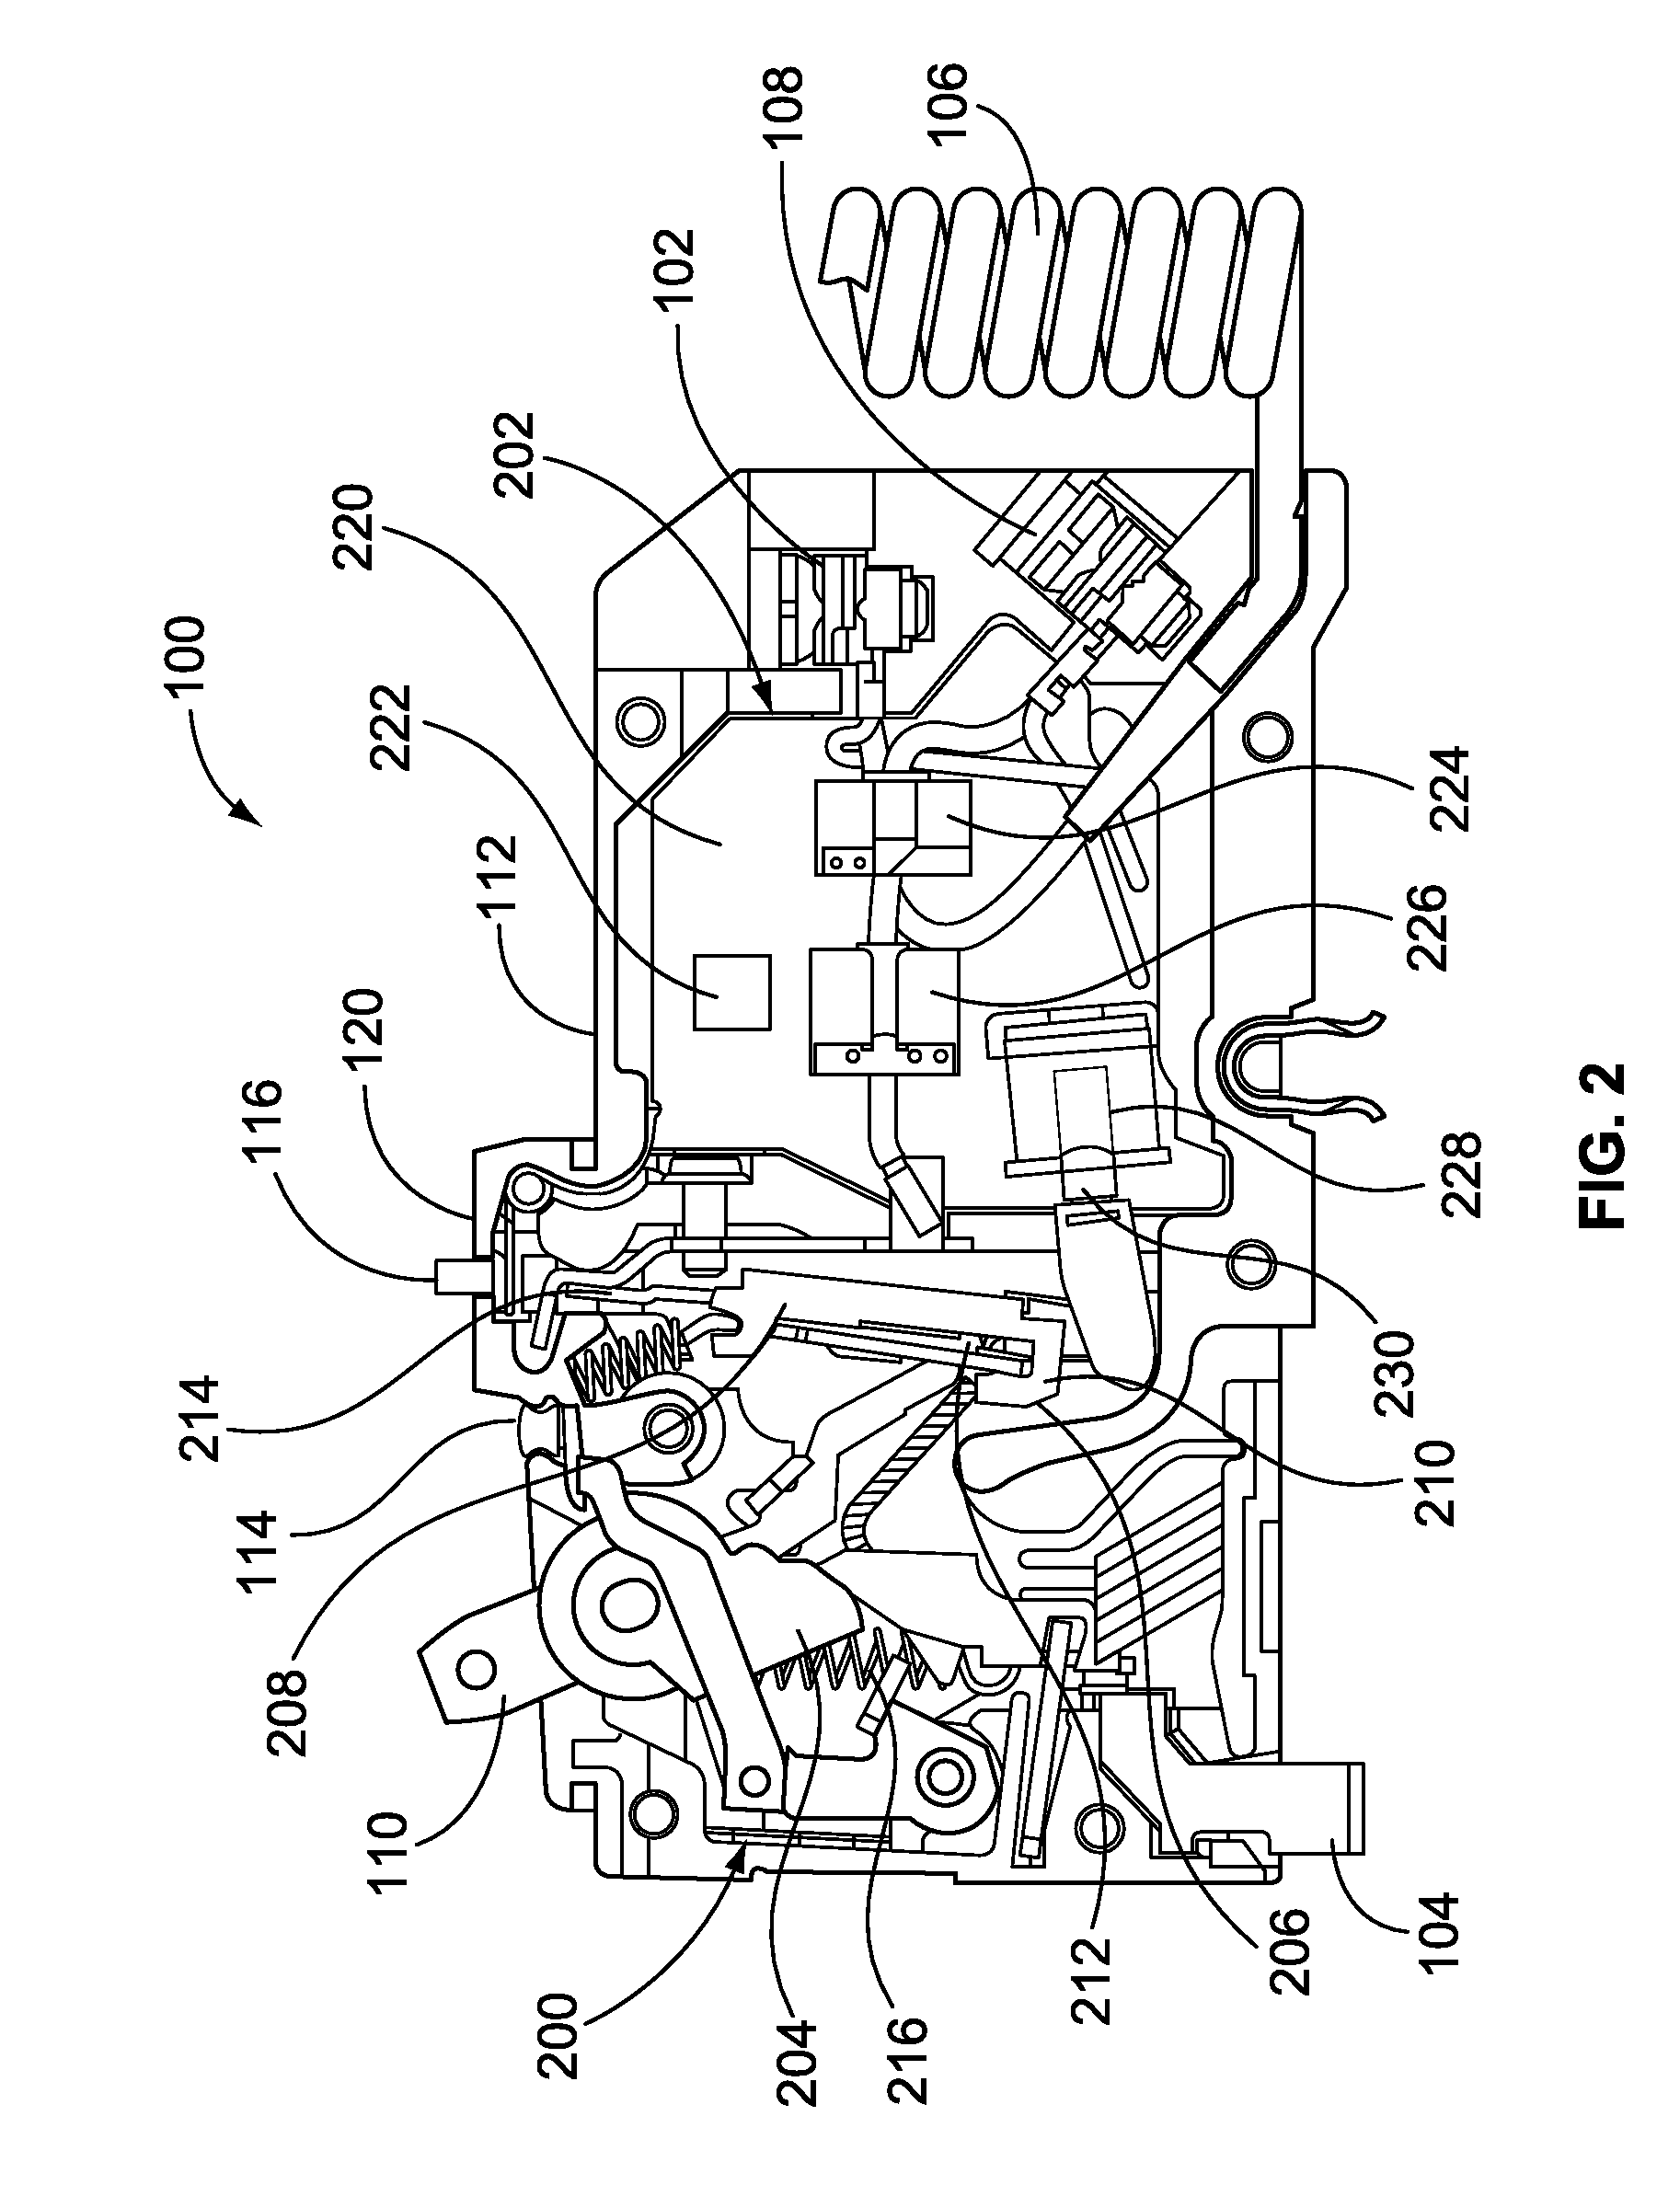 patent us20100149711 - circuit breaker with bistable display